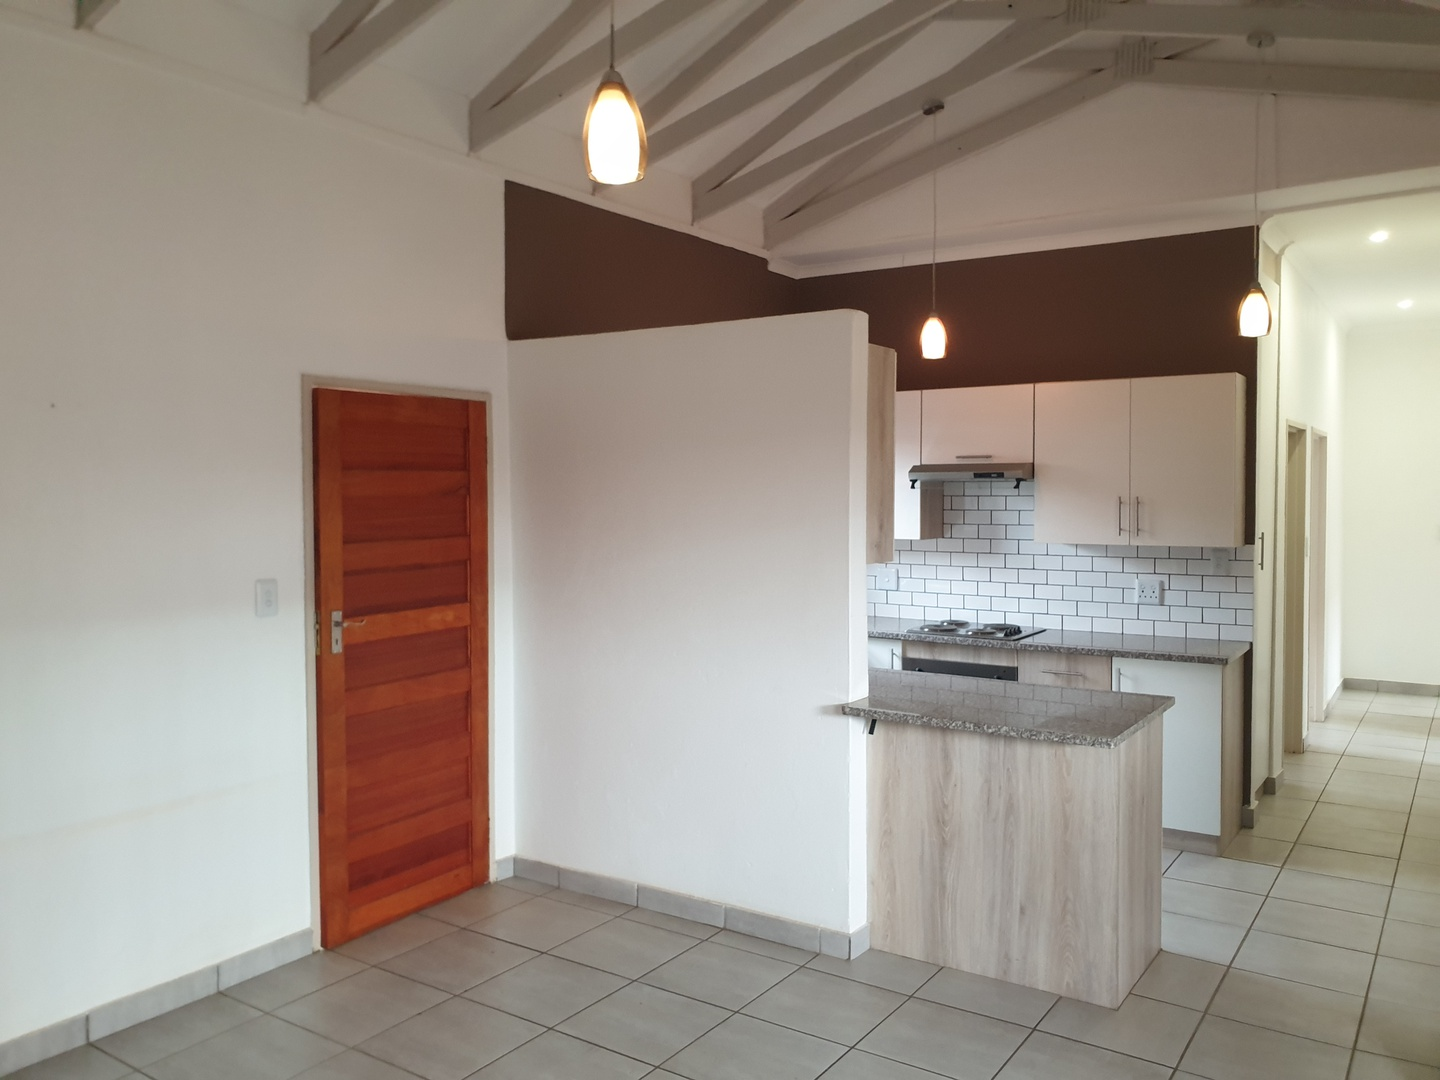 House in Bailliepark - kitchen/lounge